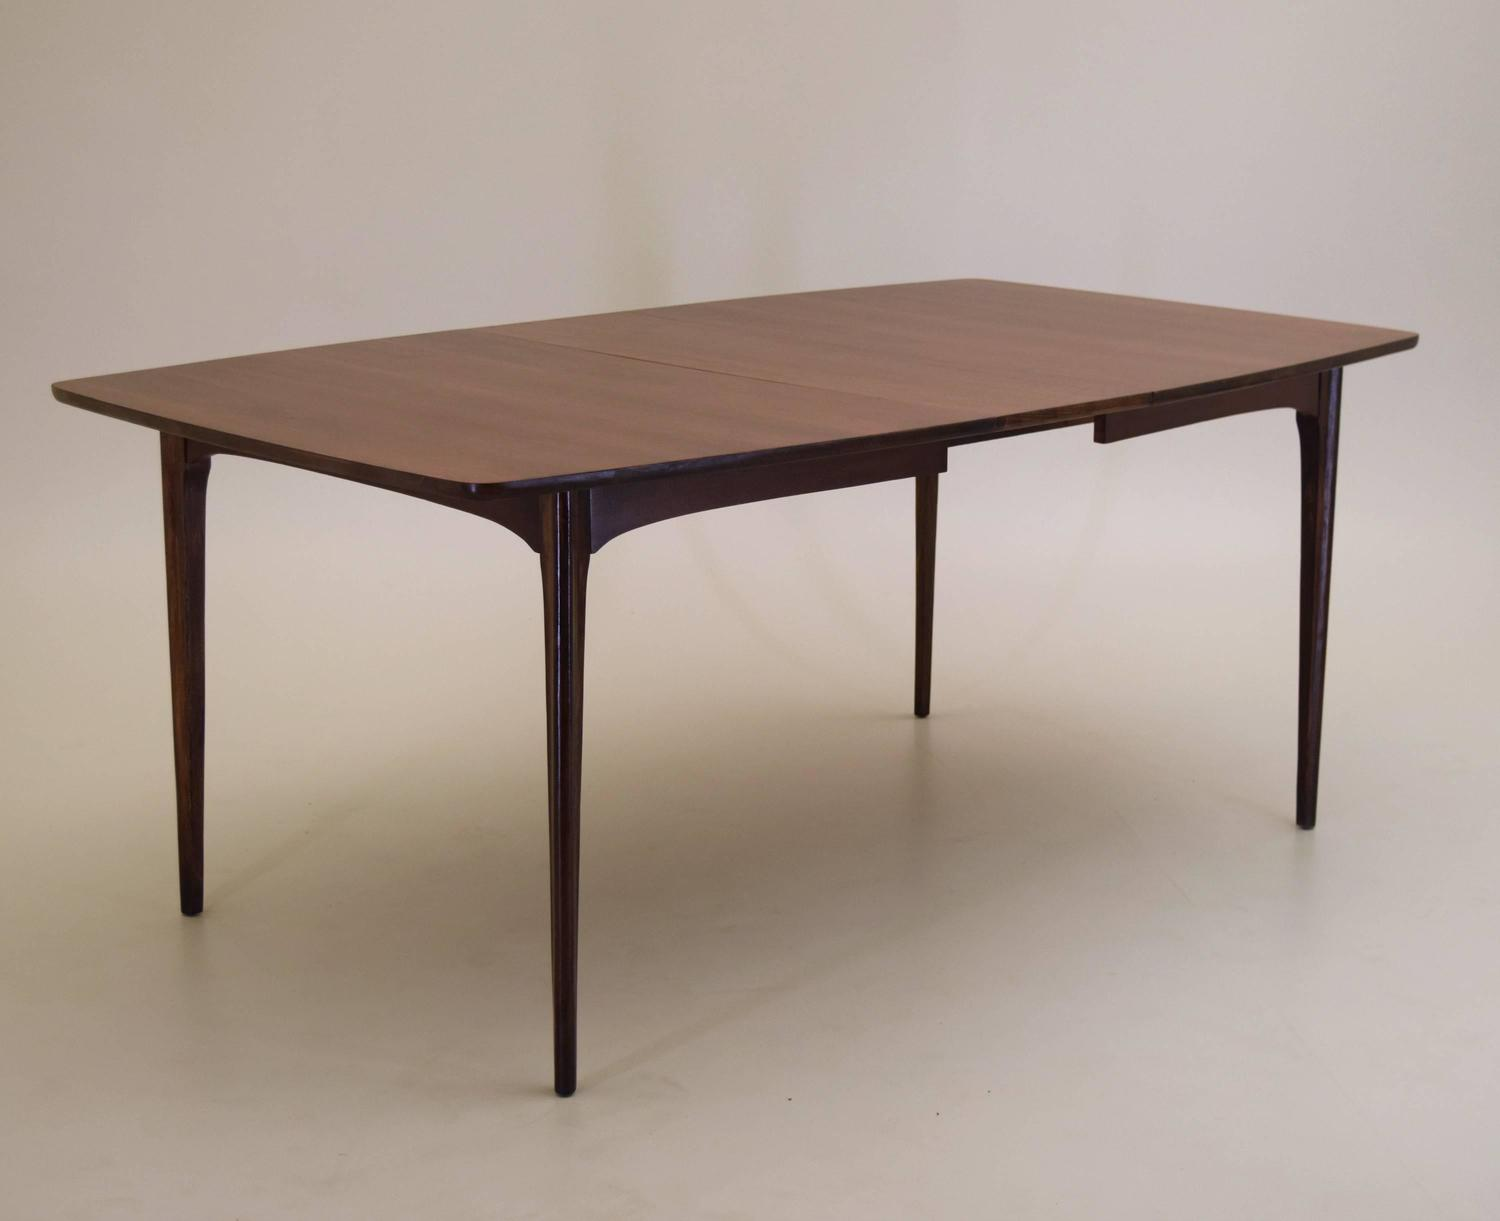 walnut dining table with extension leaf at 1stdibs